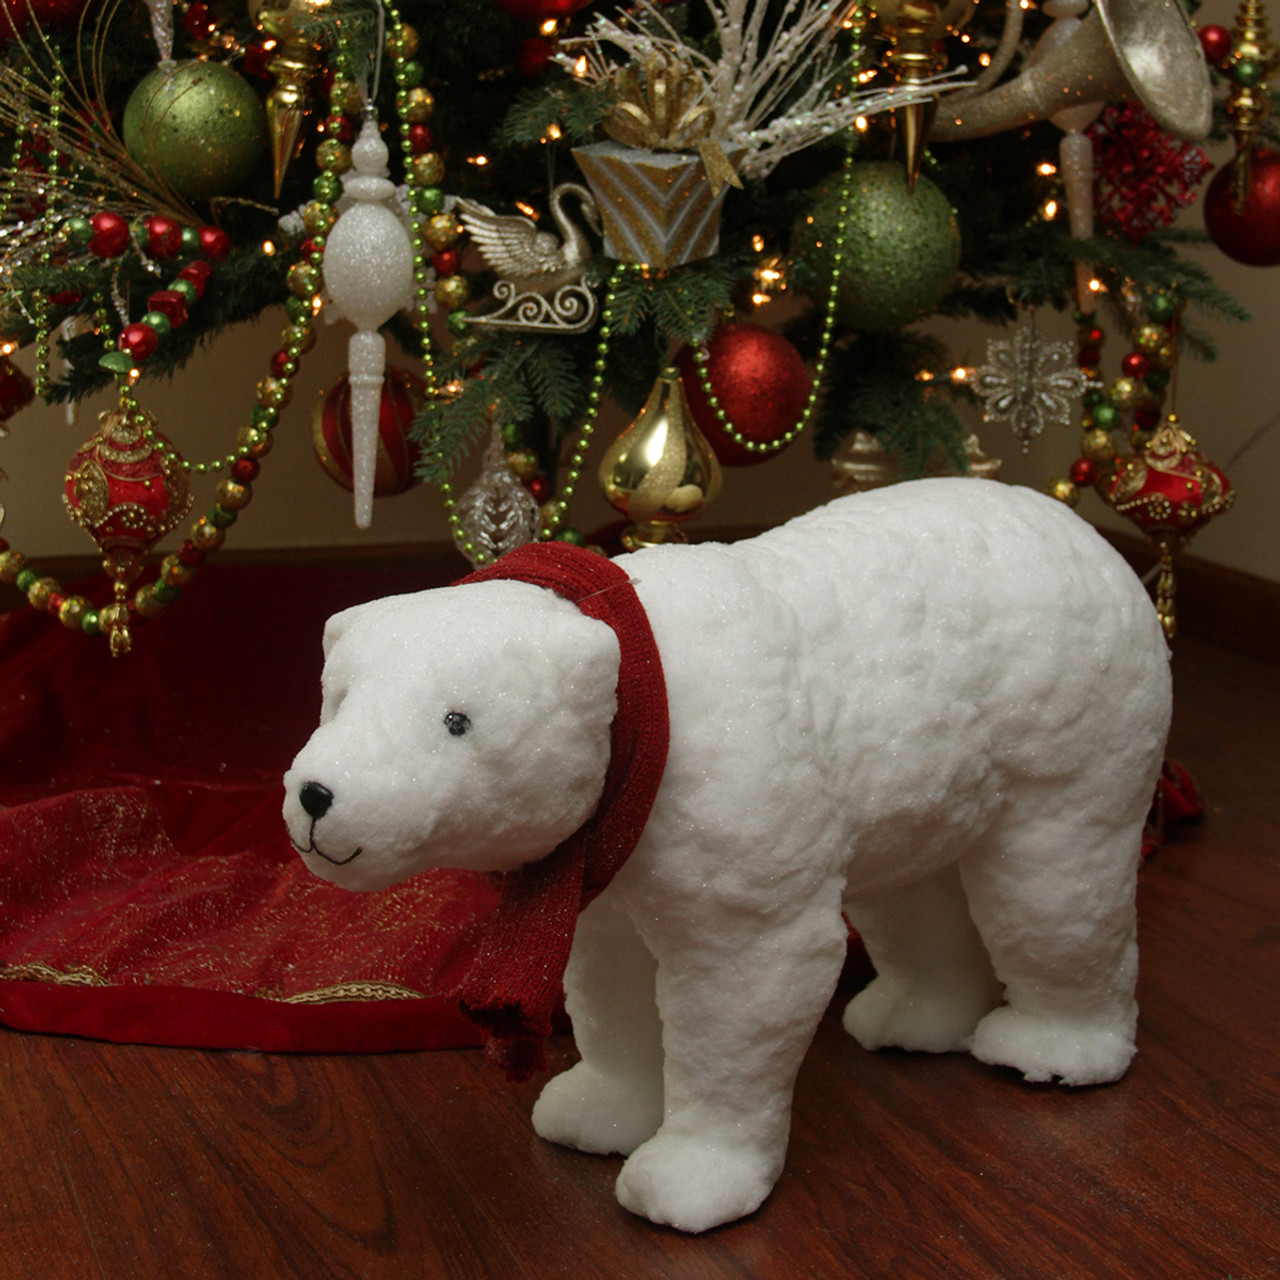 25 walking plush white polar bear christmas decoration 31463319 - Polar Bear Christmas Decorations